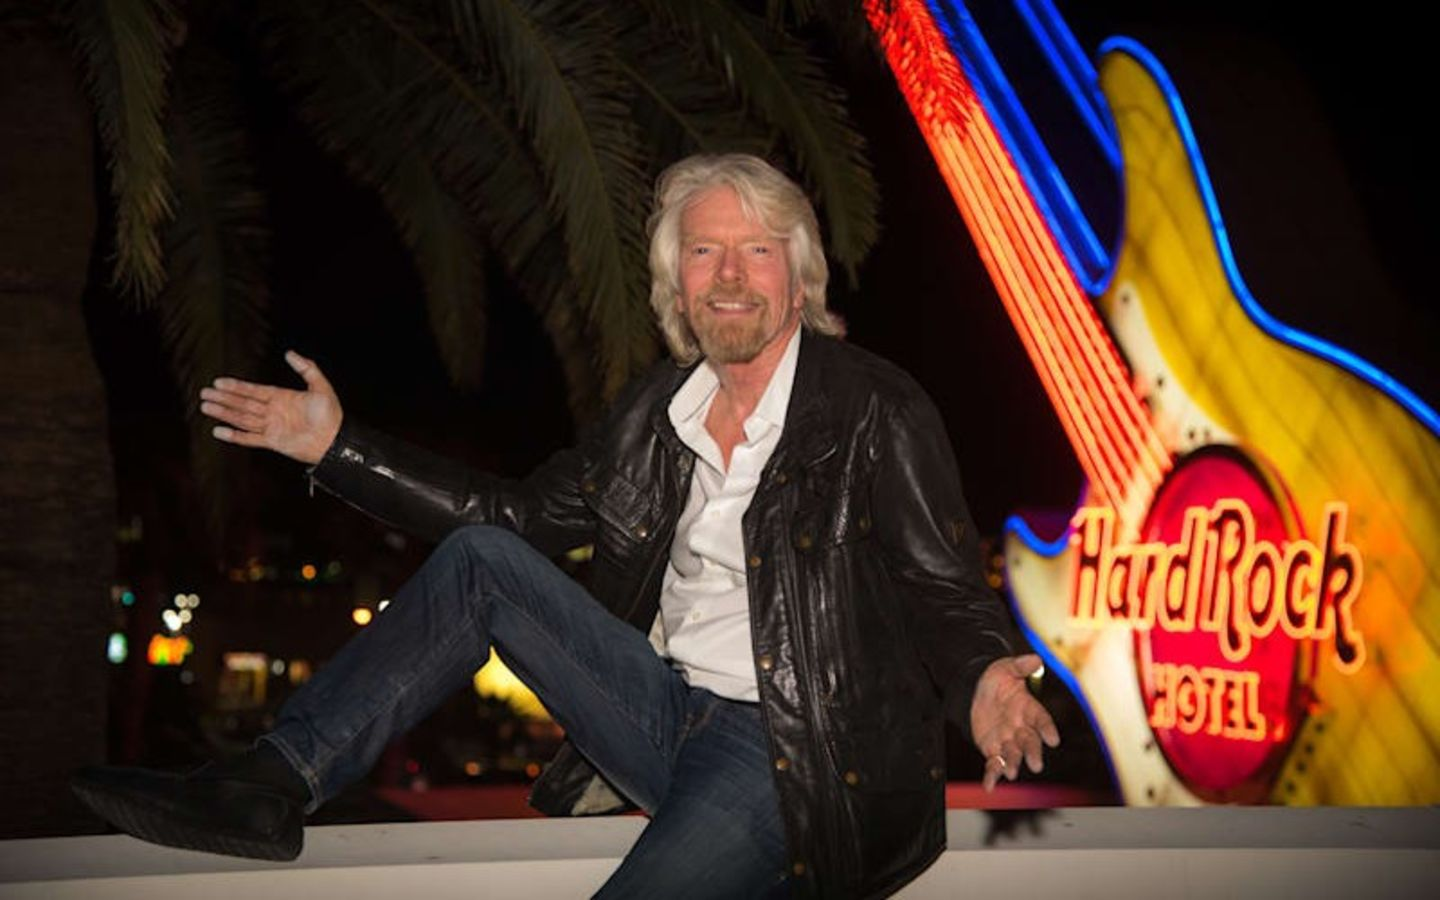 Richard Branson at the Hard Rock Hotel, which is set to become Virgin Hotels Las Vegas